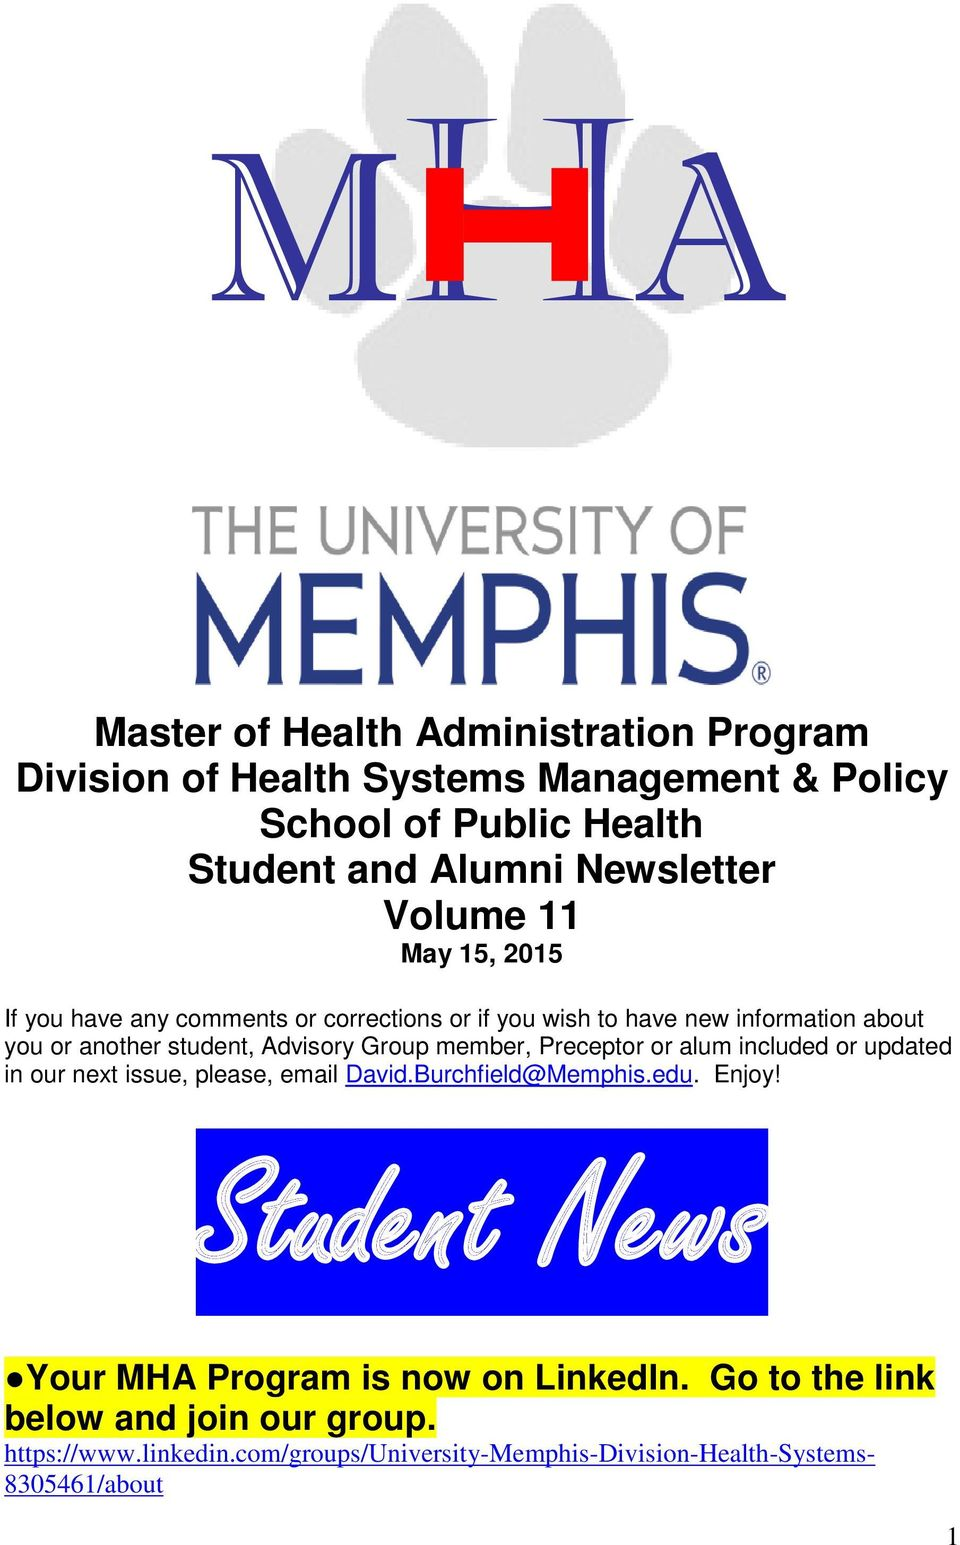 Advisory Group member, Preceptor or alum included or updated in our next issue, please, email David.Burchfield@Memphis.edu. Enjoy!